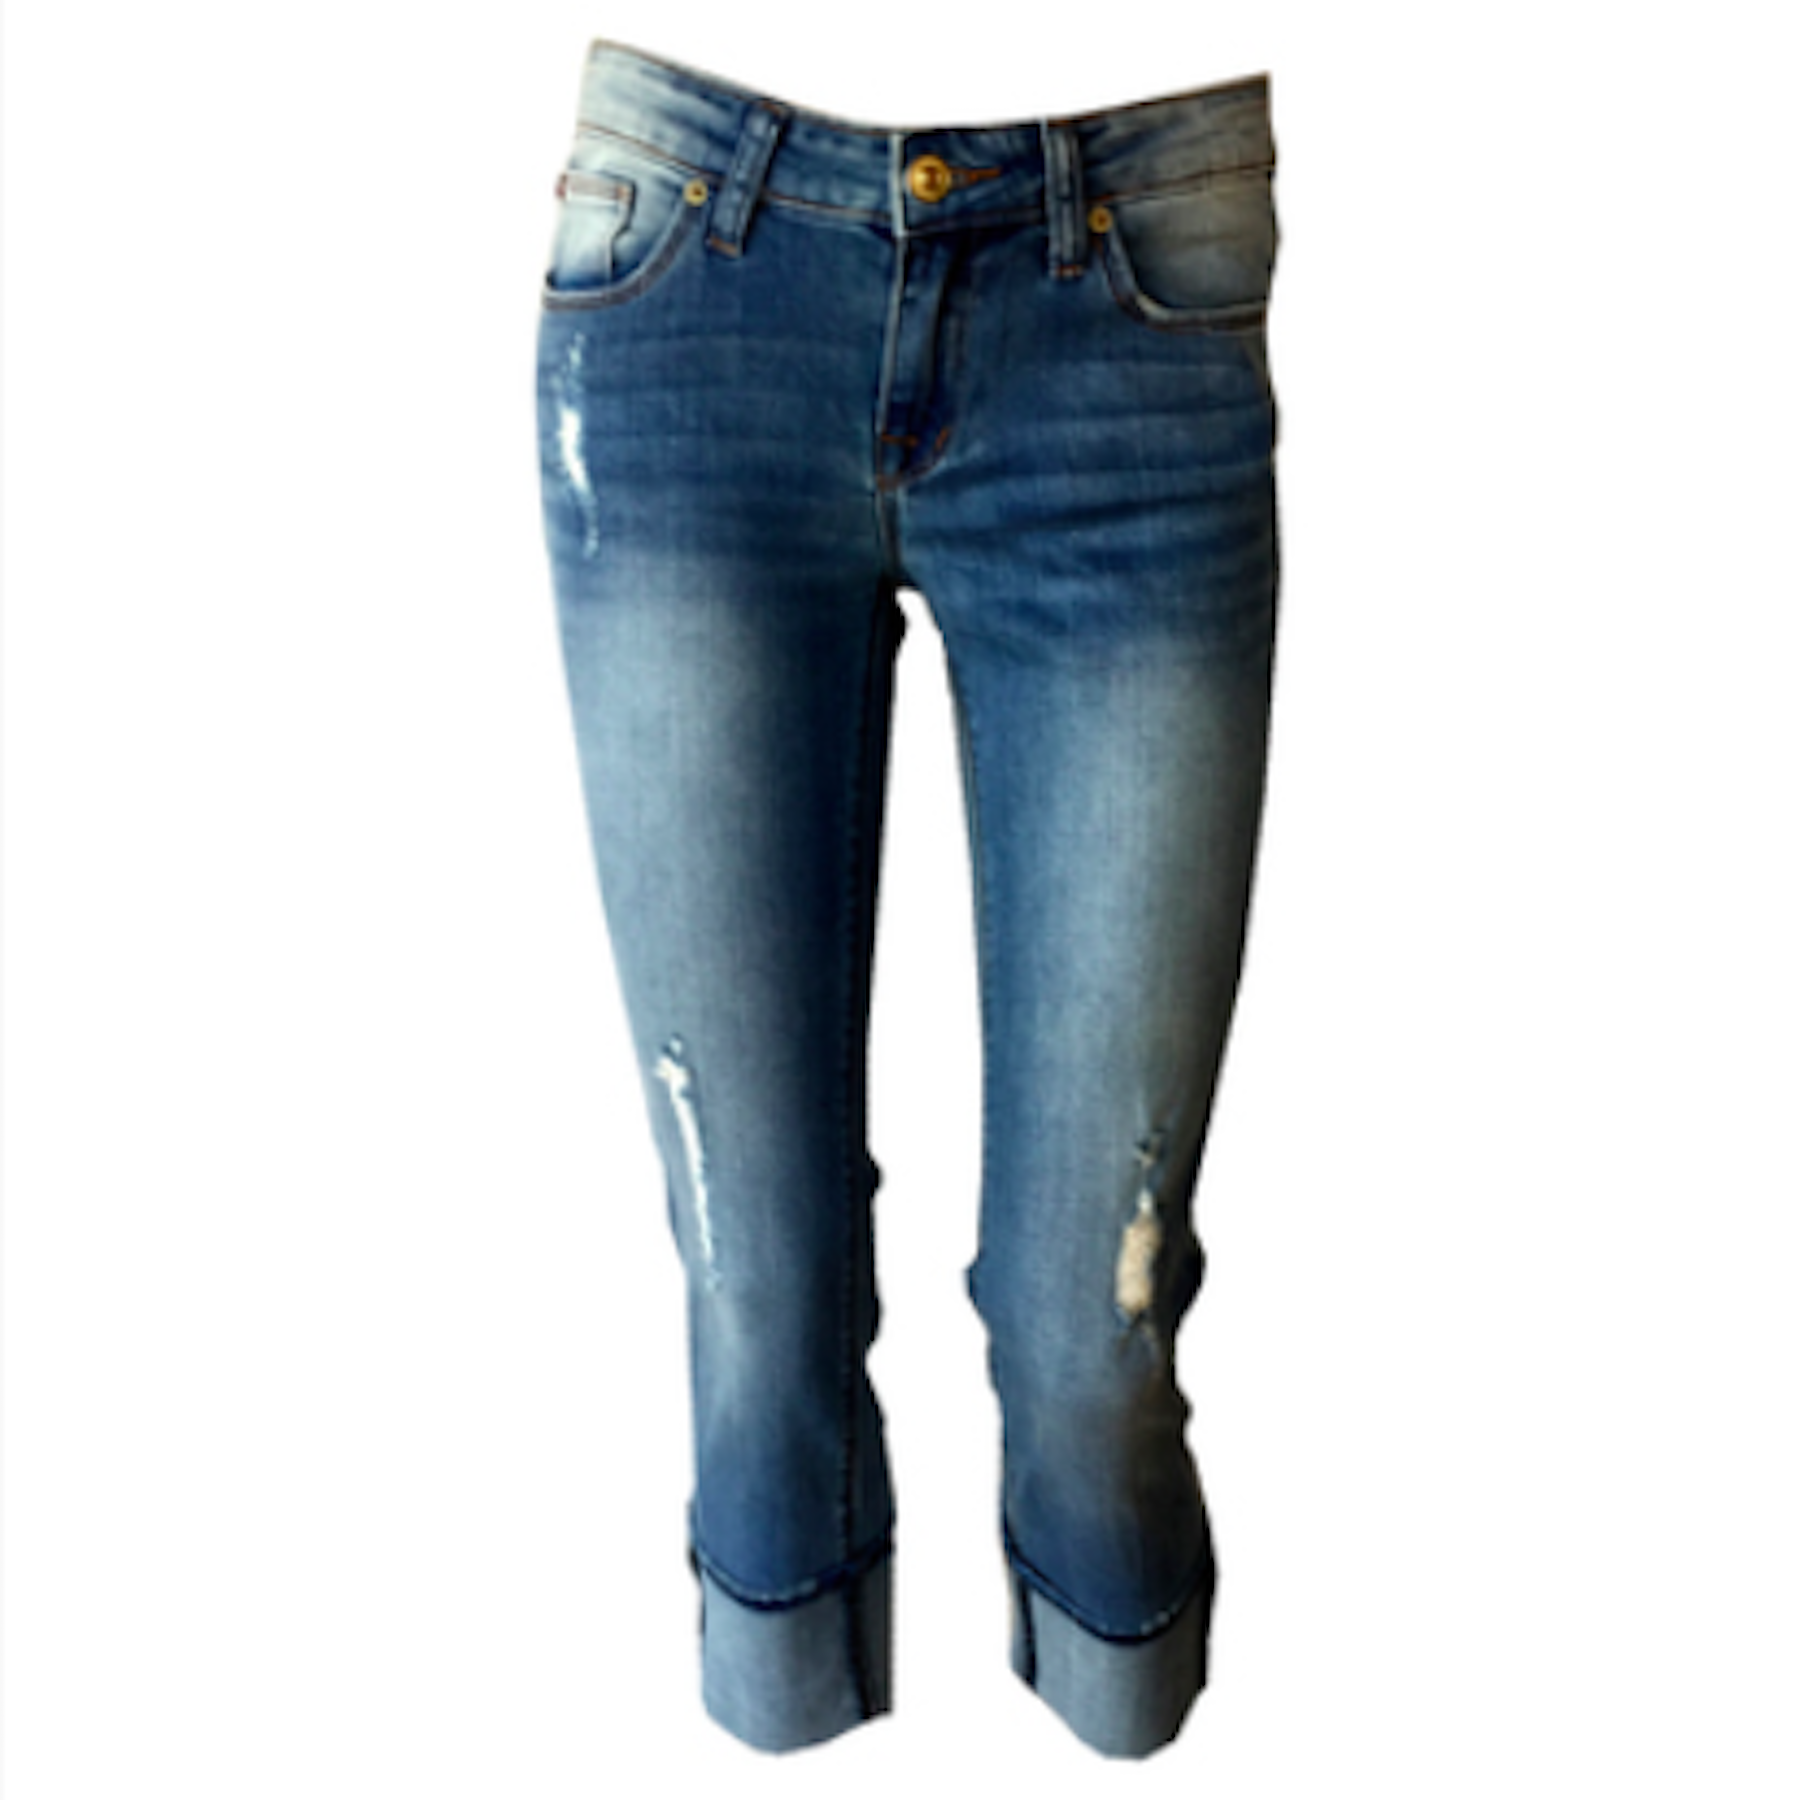 Ginny blasted blue cropped jean, blue cropped jeans, hudson jeans, teen fashion